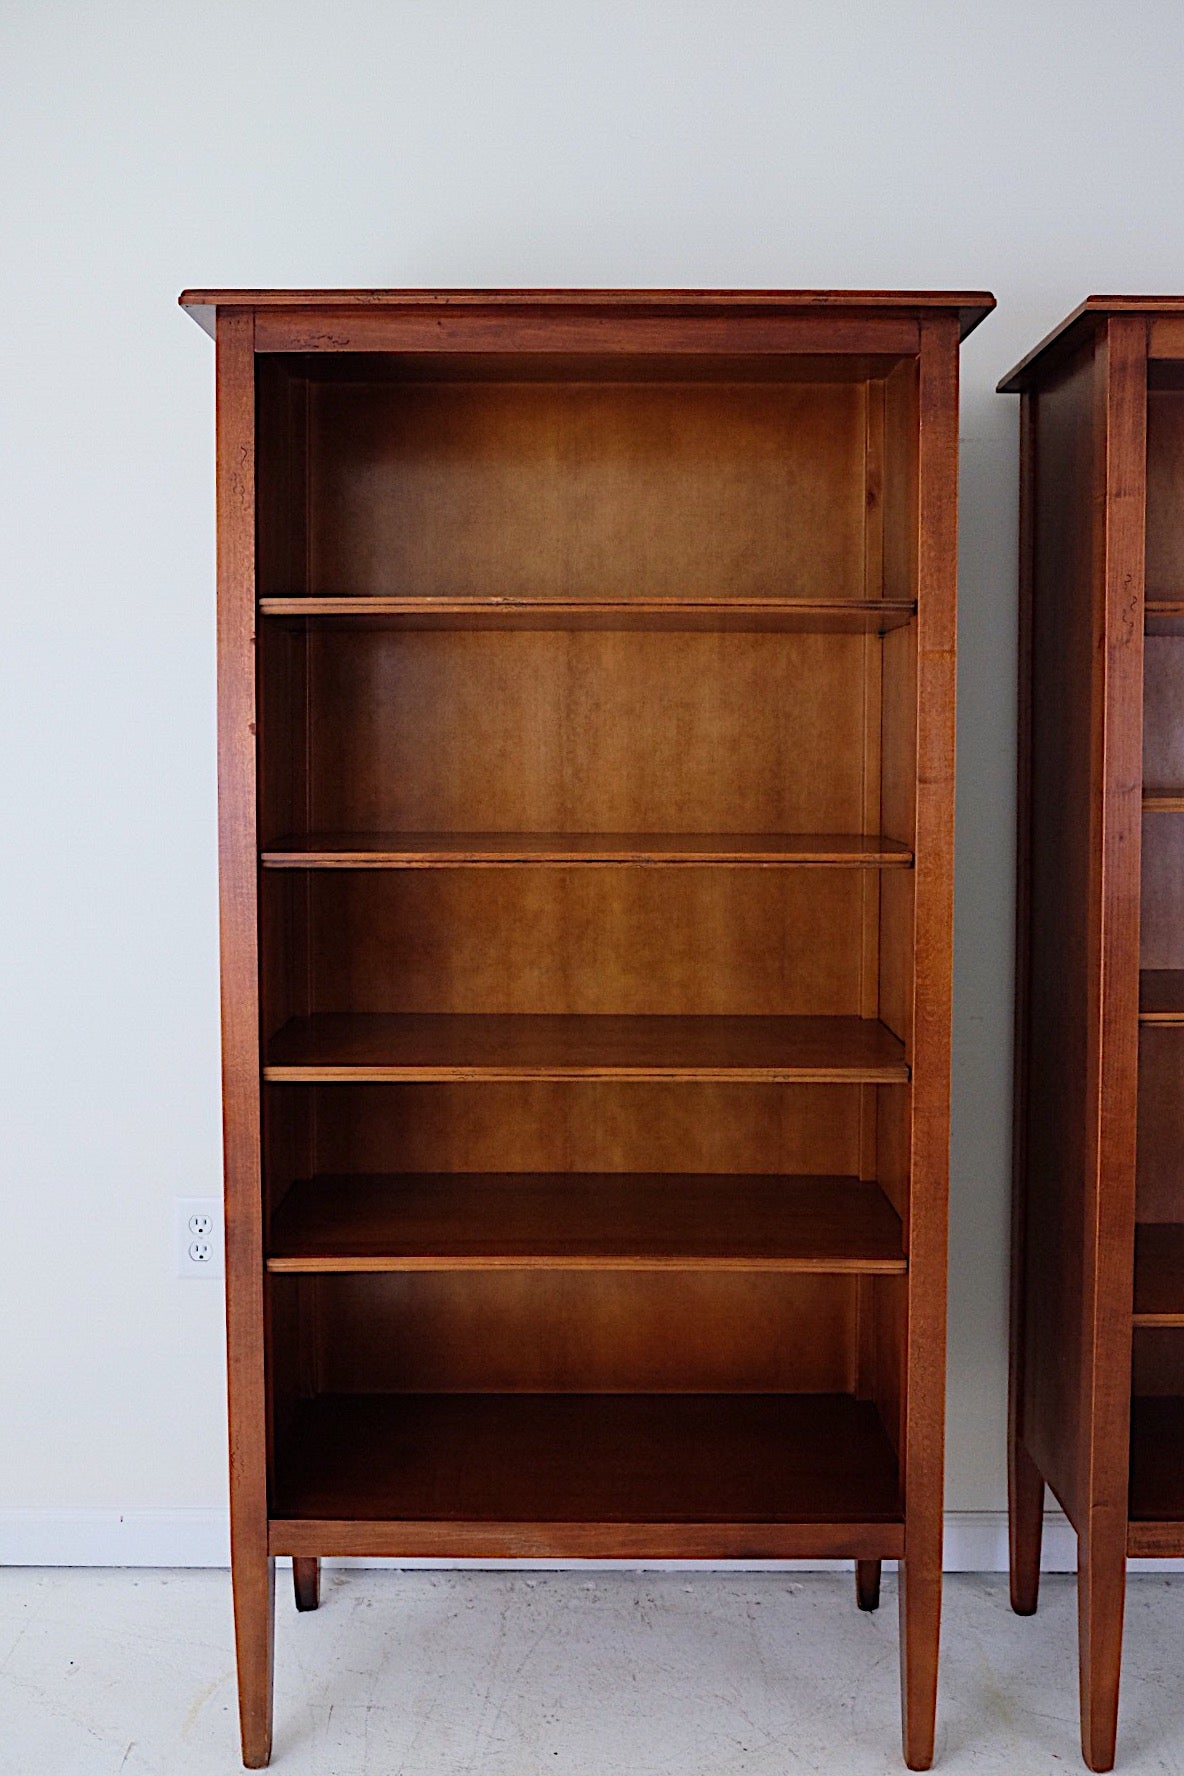 Set of Two Clean Minimal Bookcases or Room Dividers Finished Backs 360 Degrees with Legs